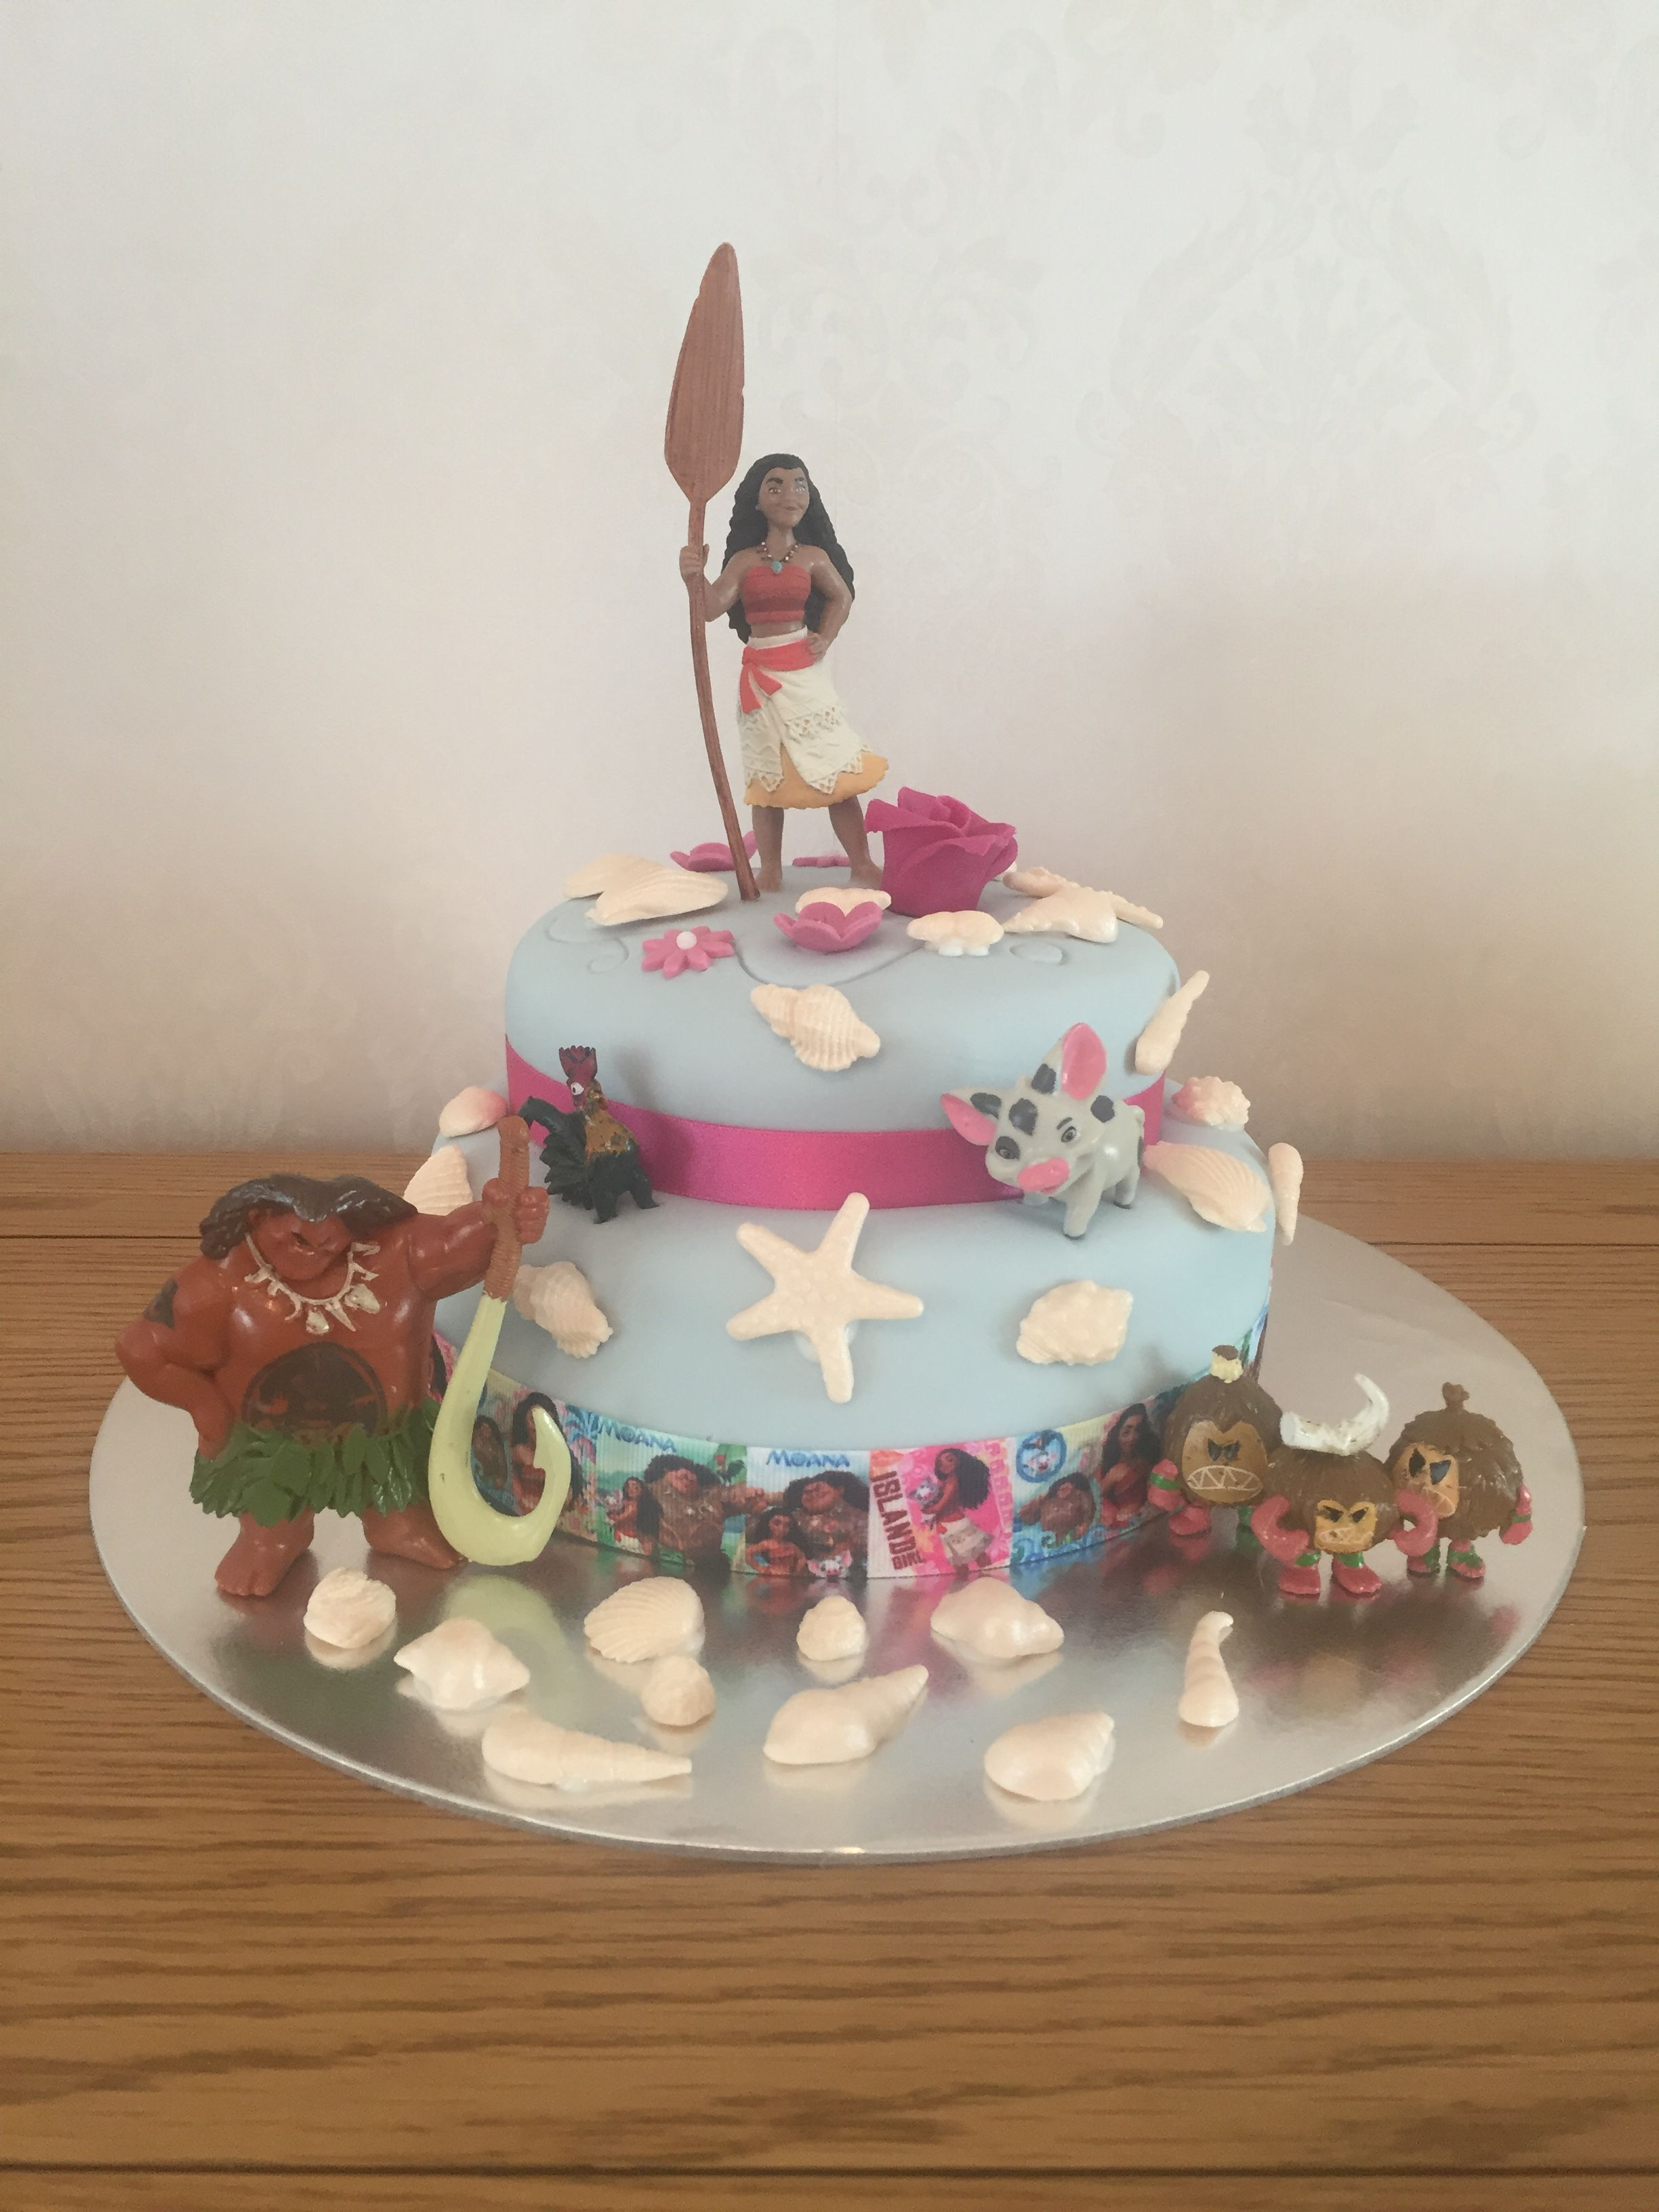 Character Birthday Cakes Asda ~ Moana themed budget birthday cake £ asda cake jazzed up with